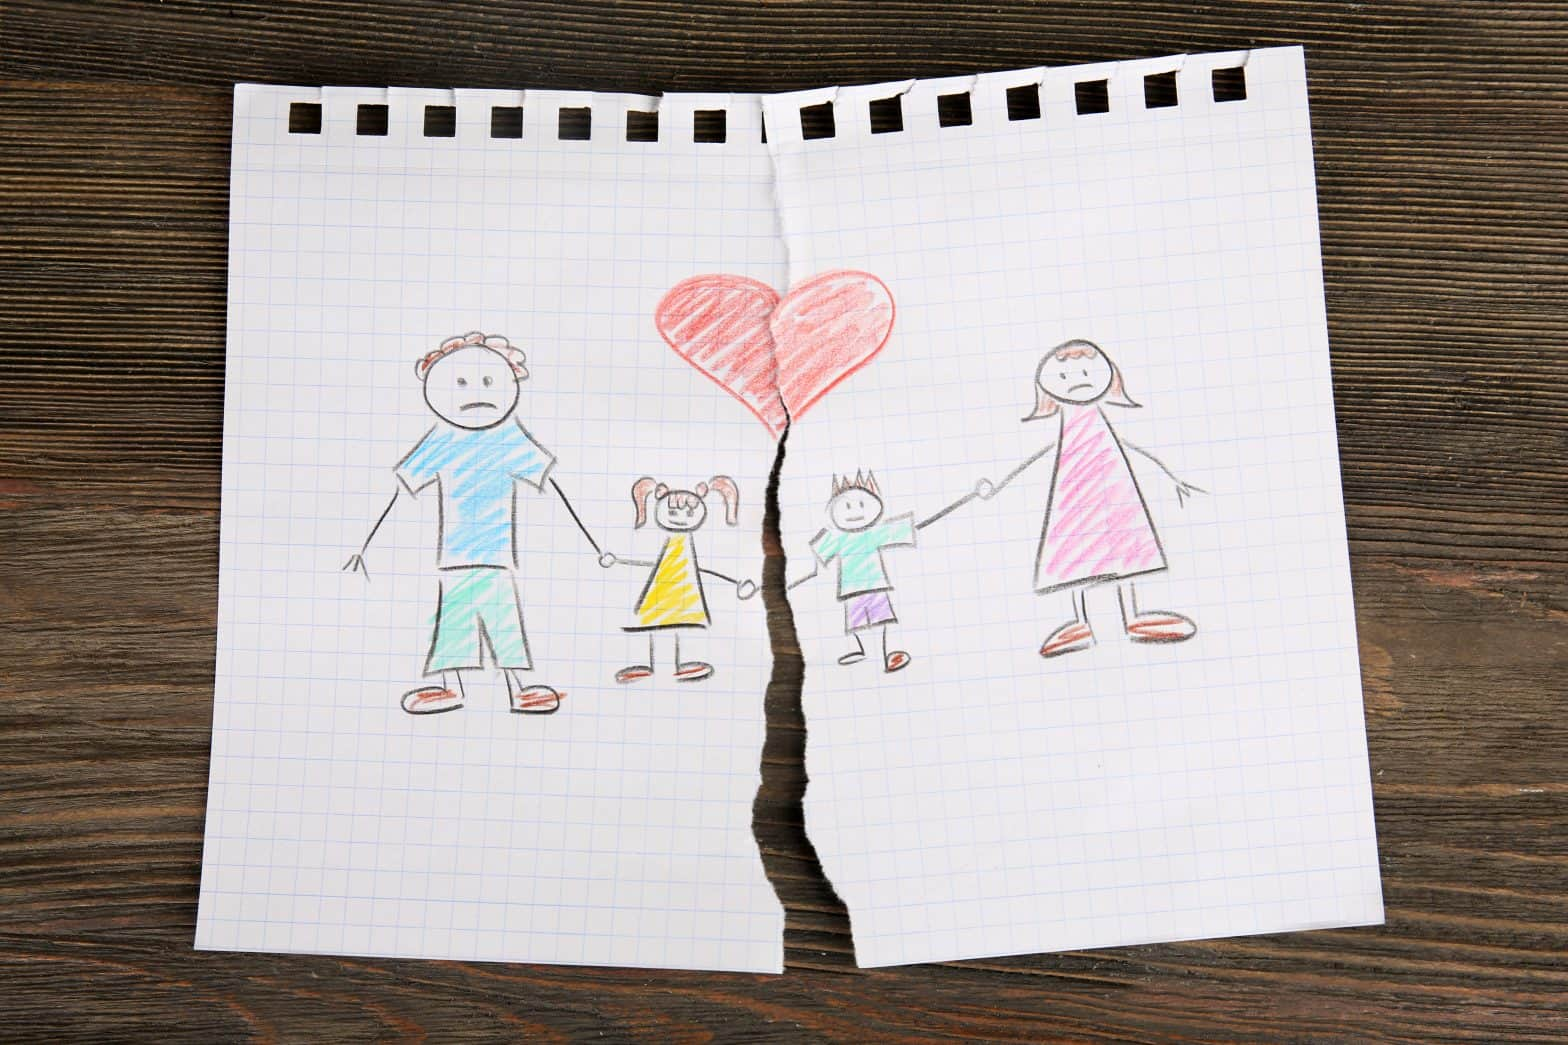 picture of parents getting divorced and how to tell your kids